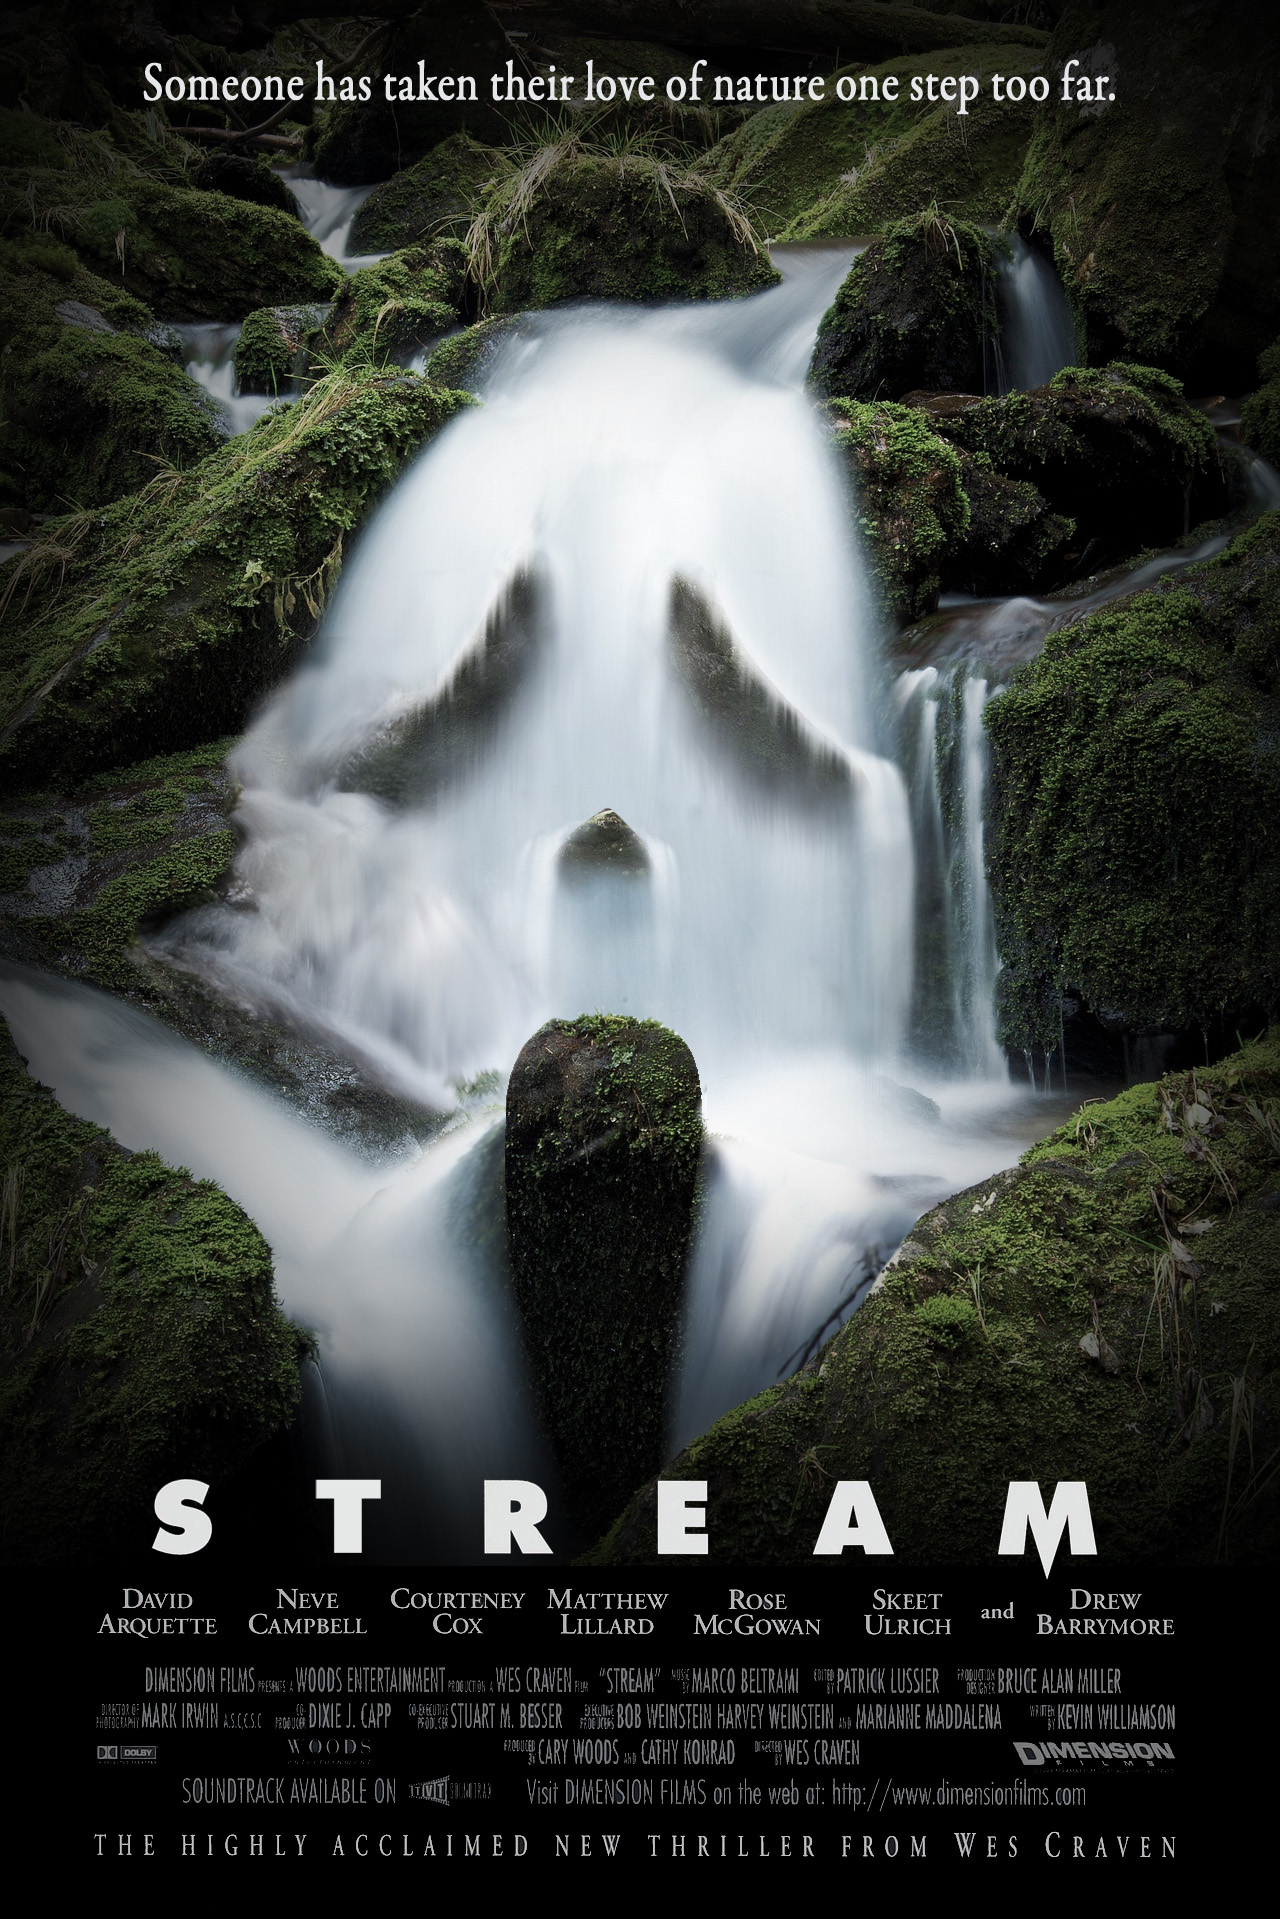 Stream One letter off DesignCrowd